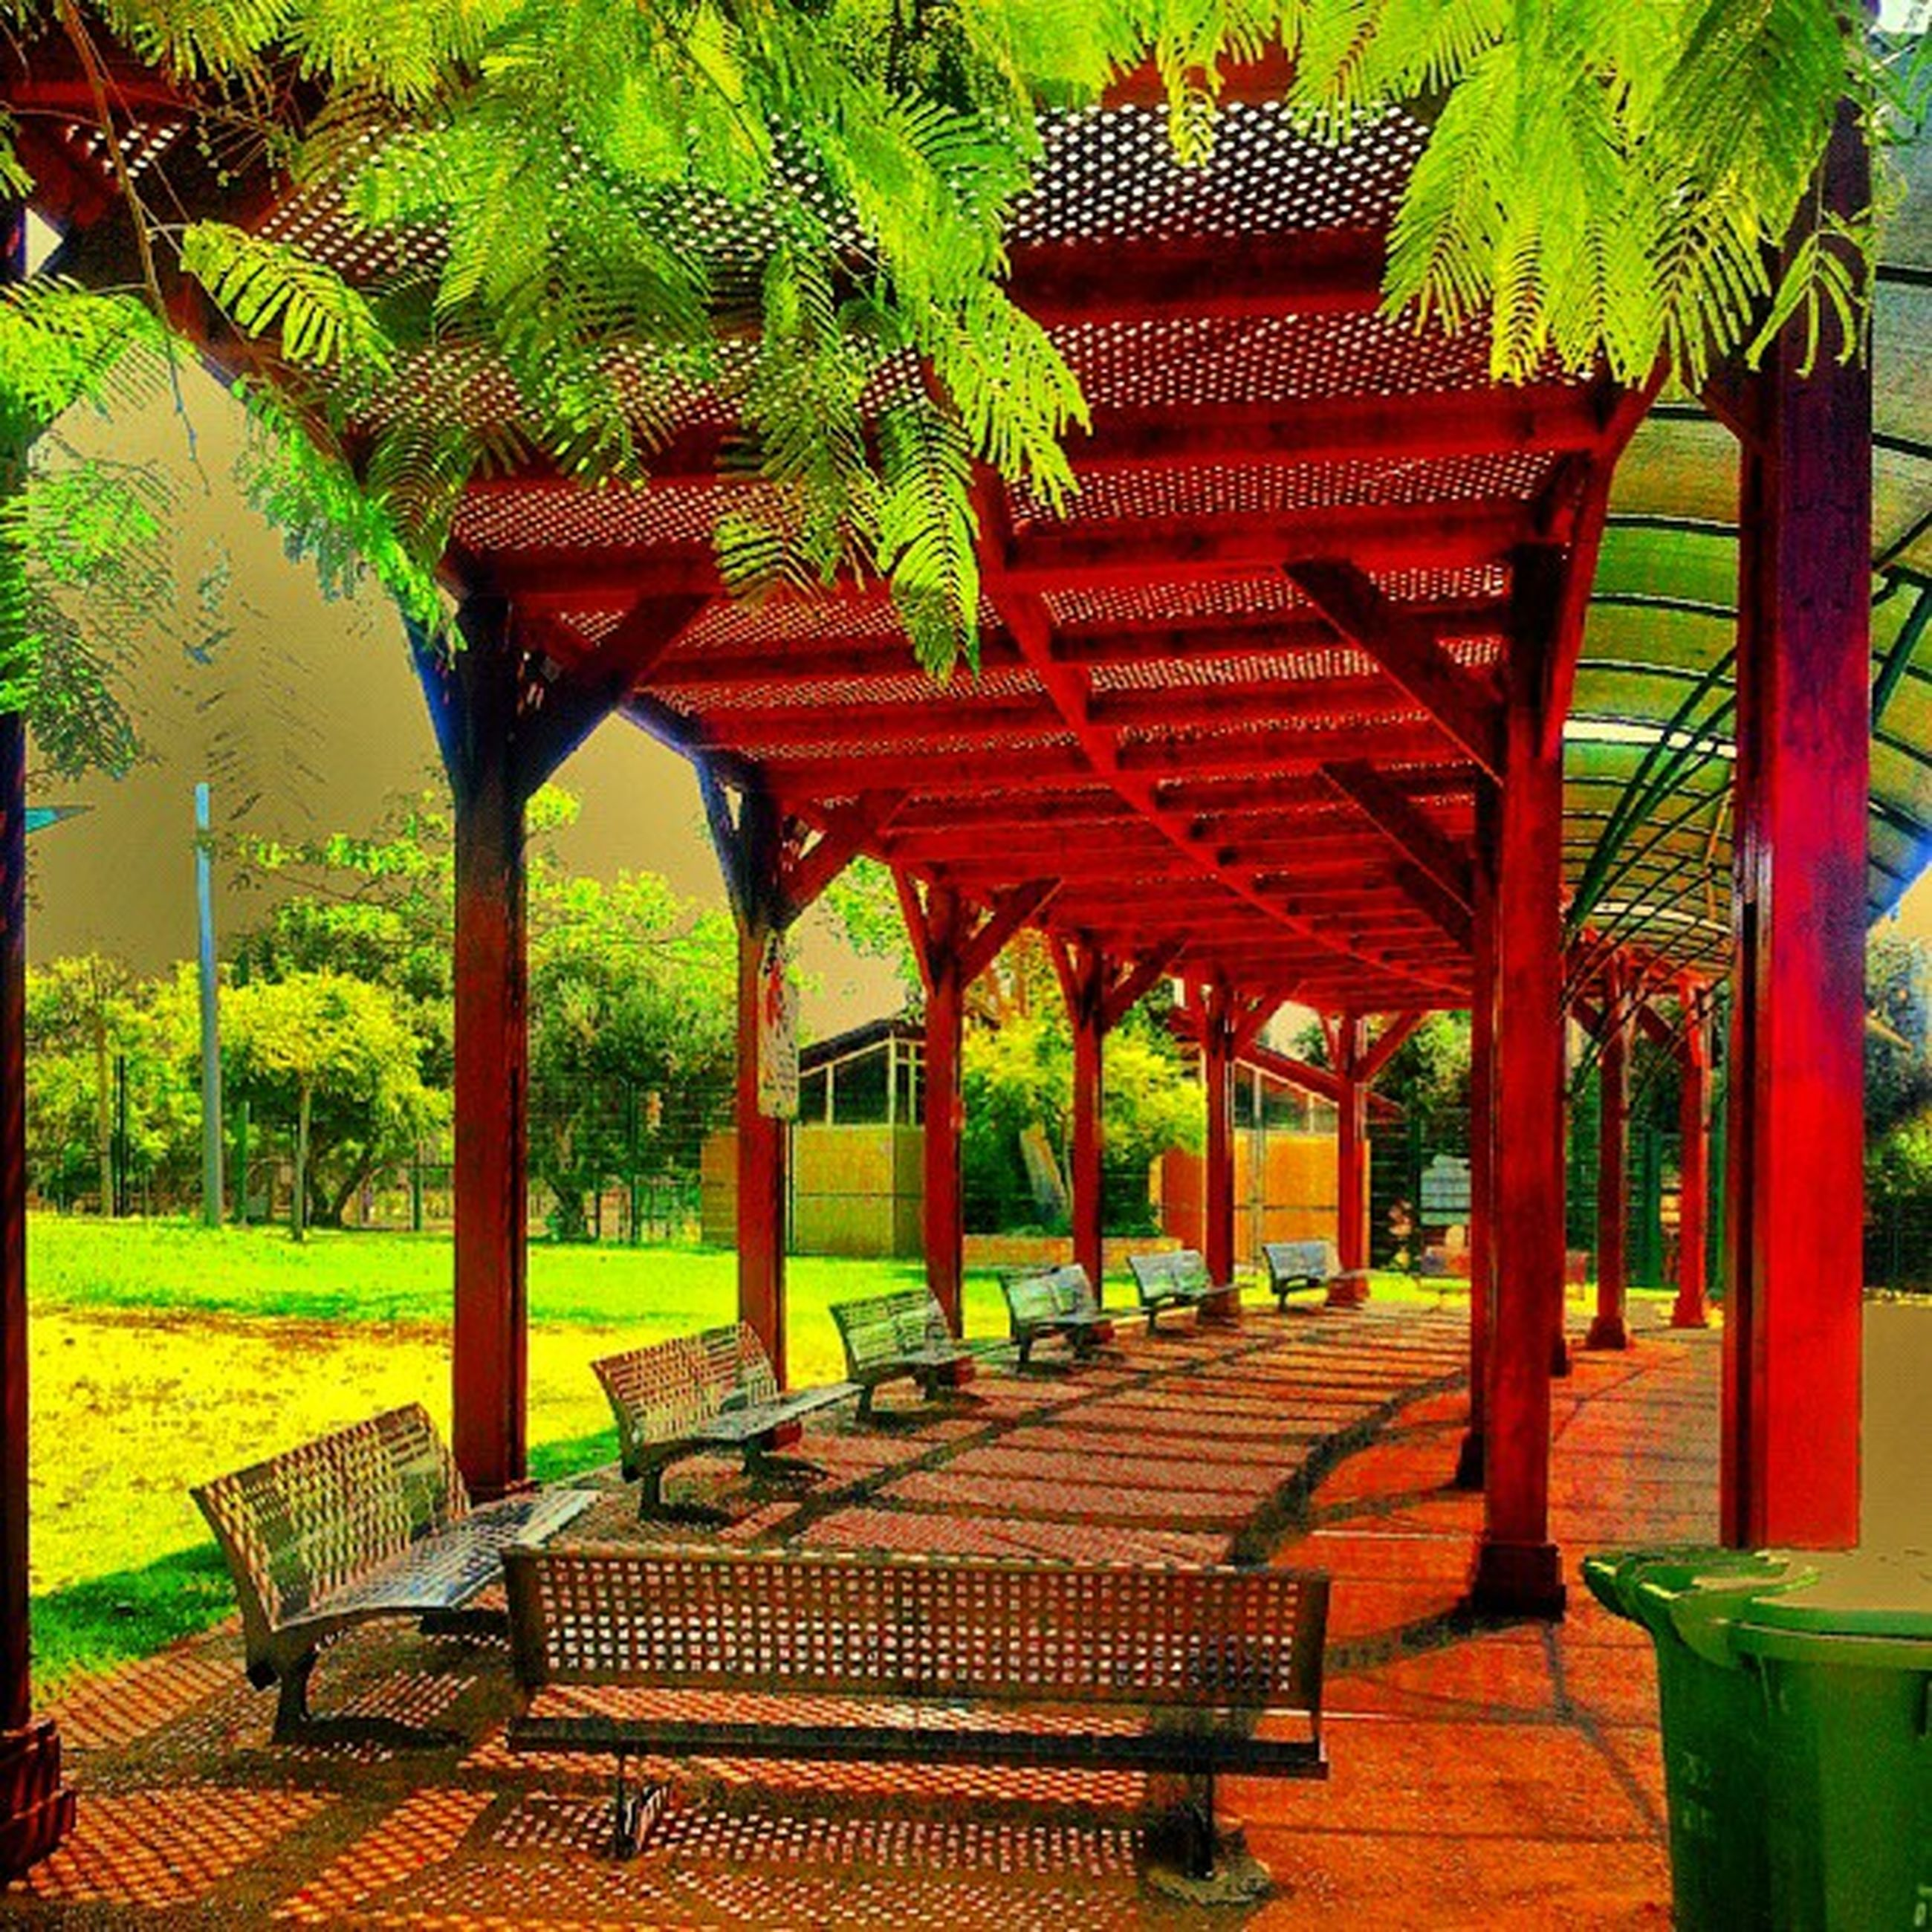 tree, chair, built structure, absence, empty, architecture, seat, bench, sunlight, gazebo, red, park - man made space, growth, in a row, table, day, nature, tranquility, outdoors, roof